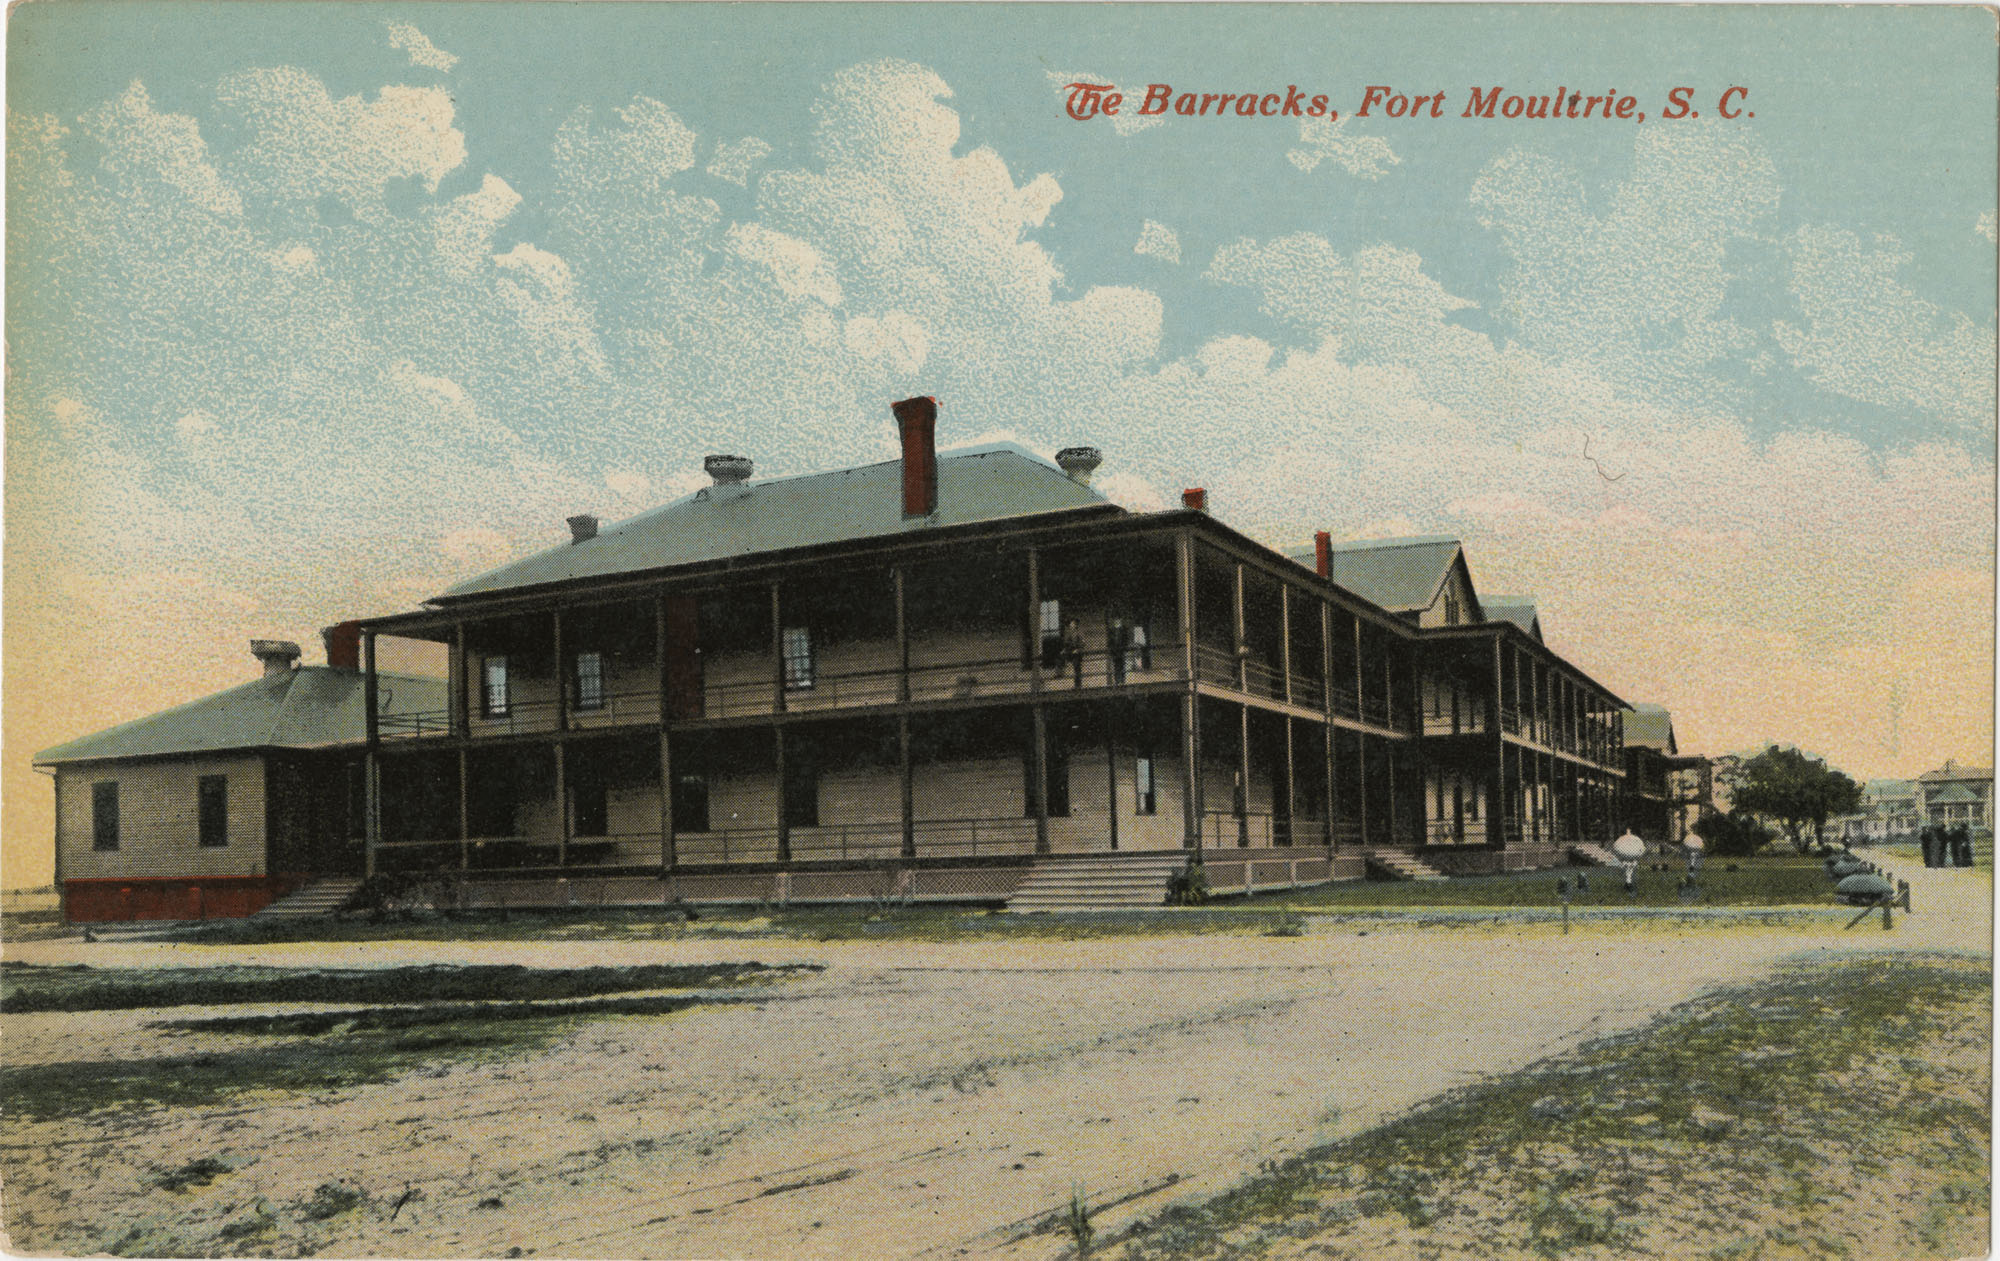 The Barracks, Fort Moultrie, S.C.